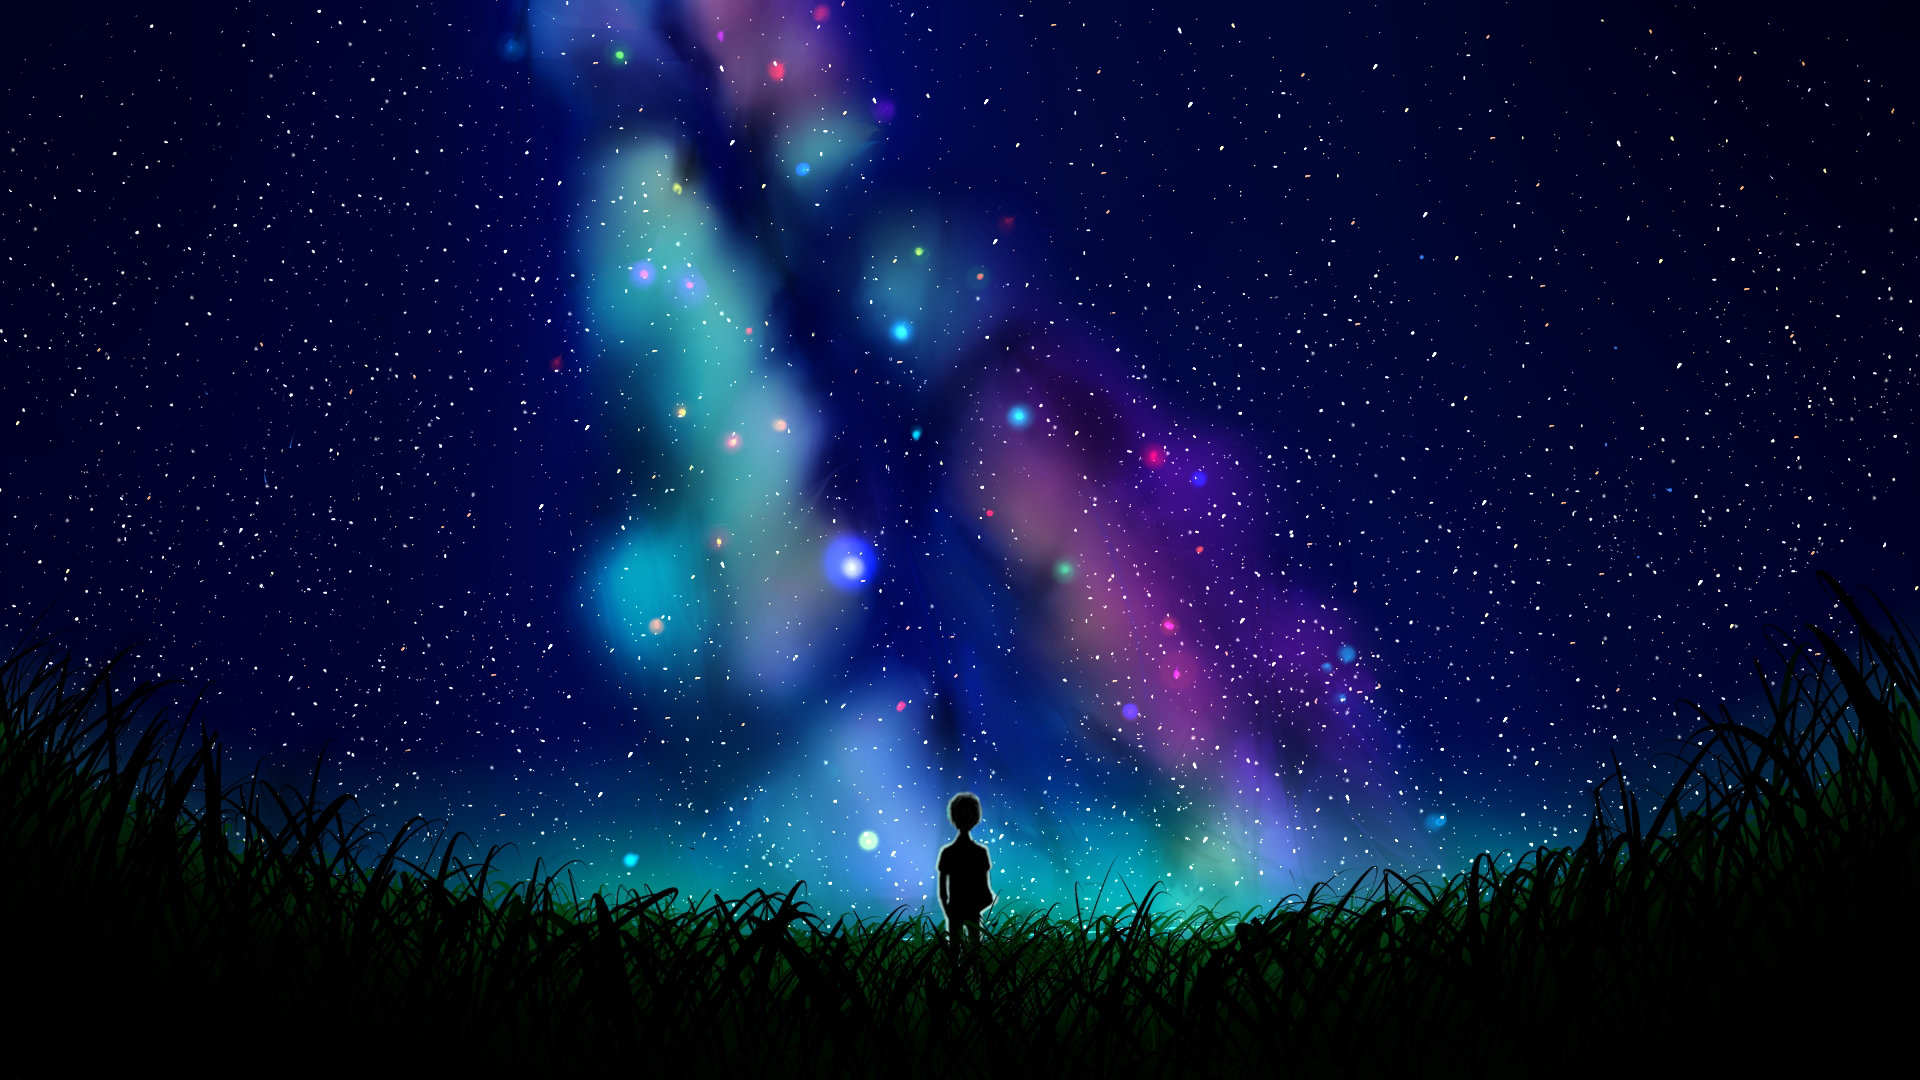 1920x1080 Alone In The Universe Art 1080p Laptop Full Hd